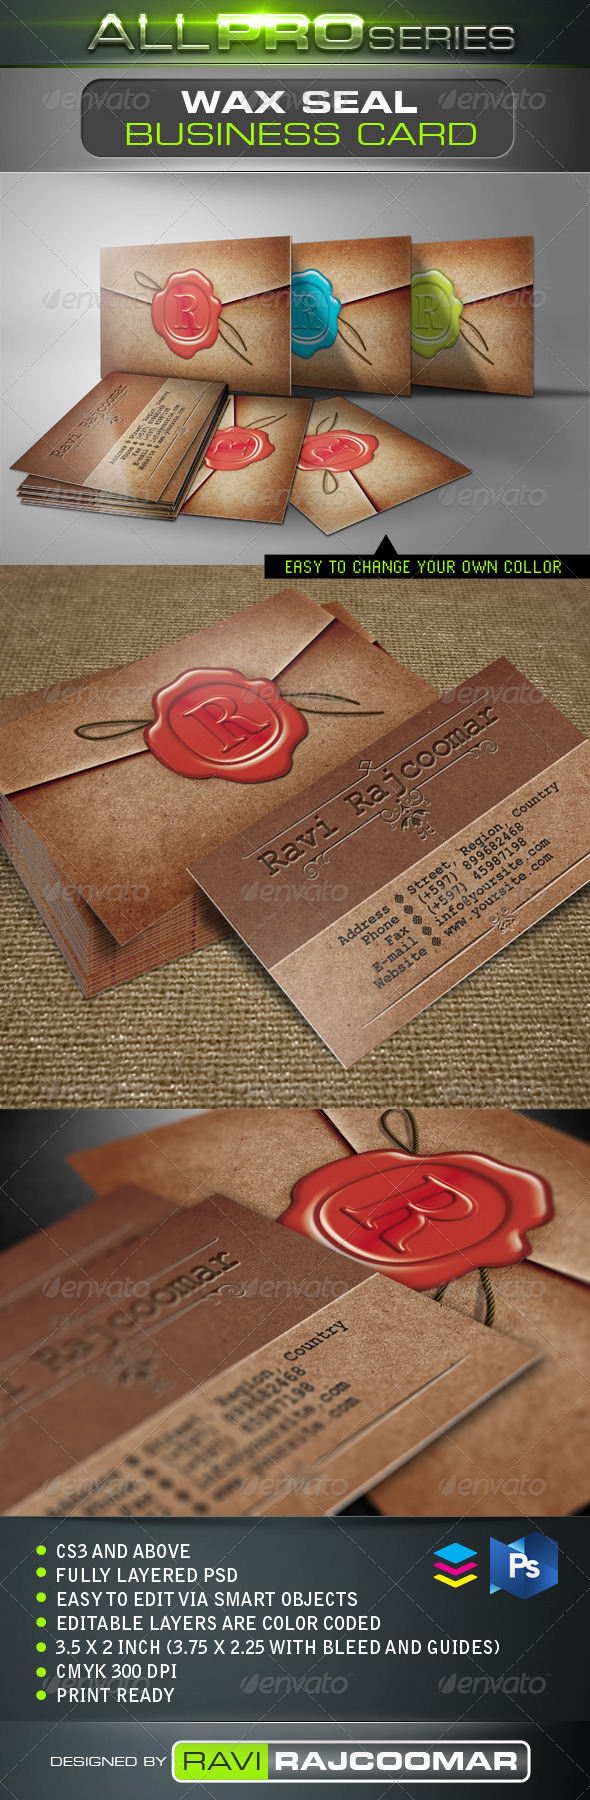 Wax Seal Business Card - Creative Business Cards